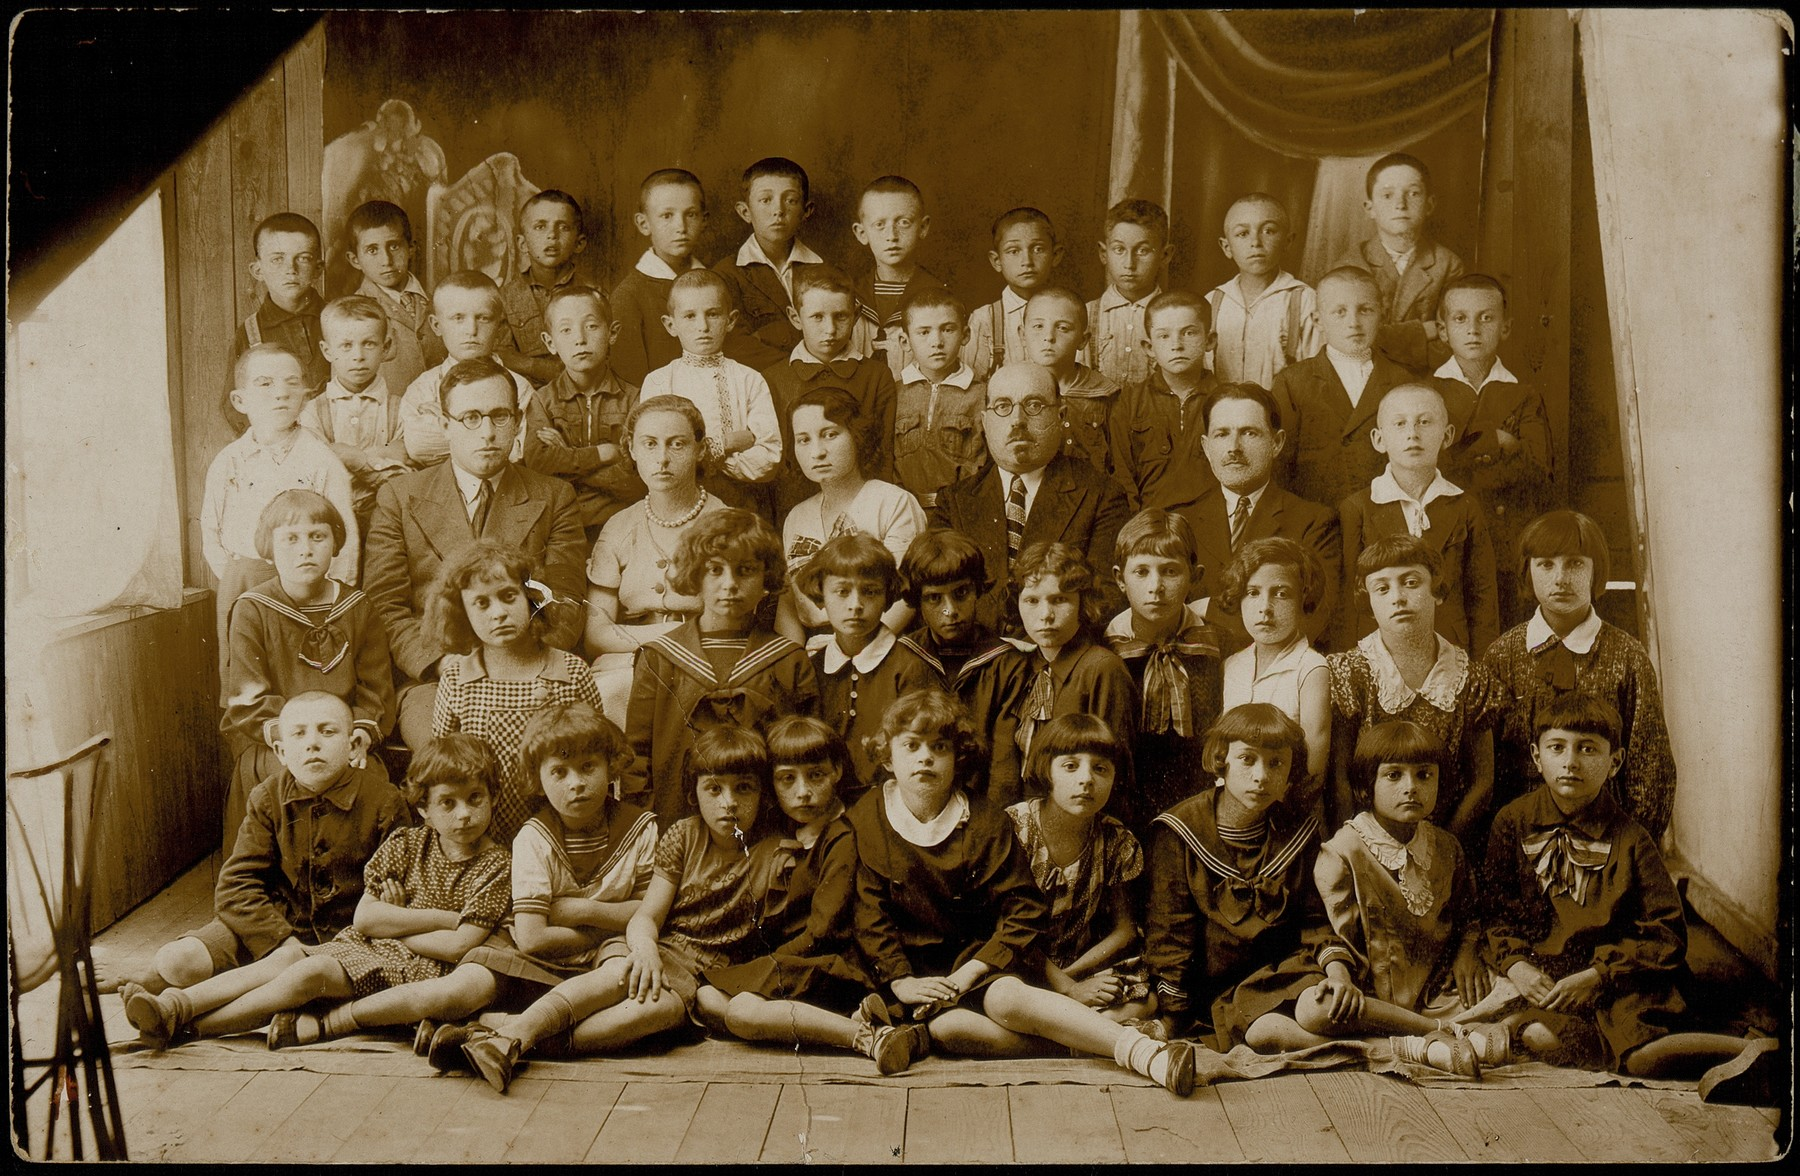 A class picture of the Hebrew school in Eisiskes.  Top row, fifth from right, Moshe Bastunski.  Third row from top, the principal, Moshe Yaakov Botwinik sits in the center.  At the far right is Avigdor Katz.  Second row from bottom, at the far left is Hayya Shlanski.  Sitting on the floor second from right is Hayyala Tawlitski.    Hayya Shlanski emigrated to America with her family.  Principal Botwinik was murdered in the Radun ghetto on May 10, 1942. The identified children were murdered in the September 1941 massacre.